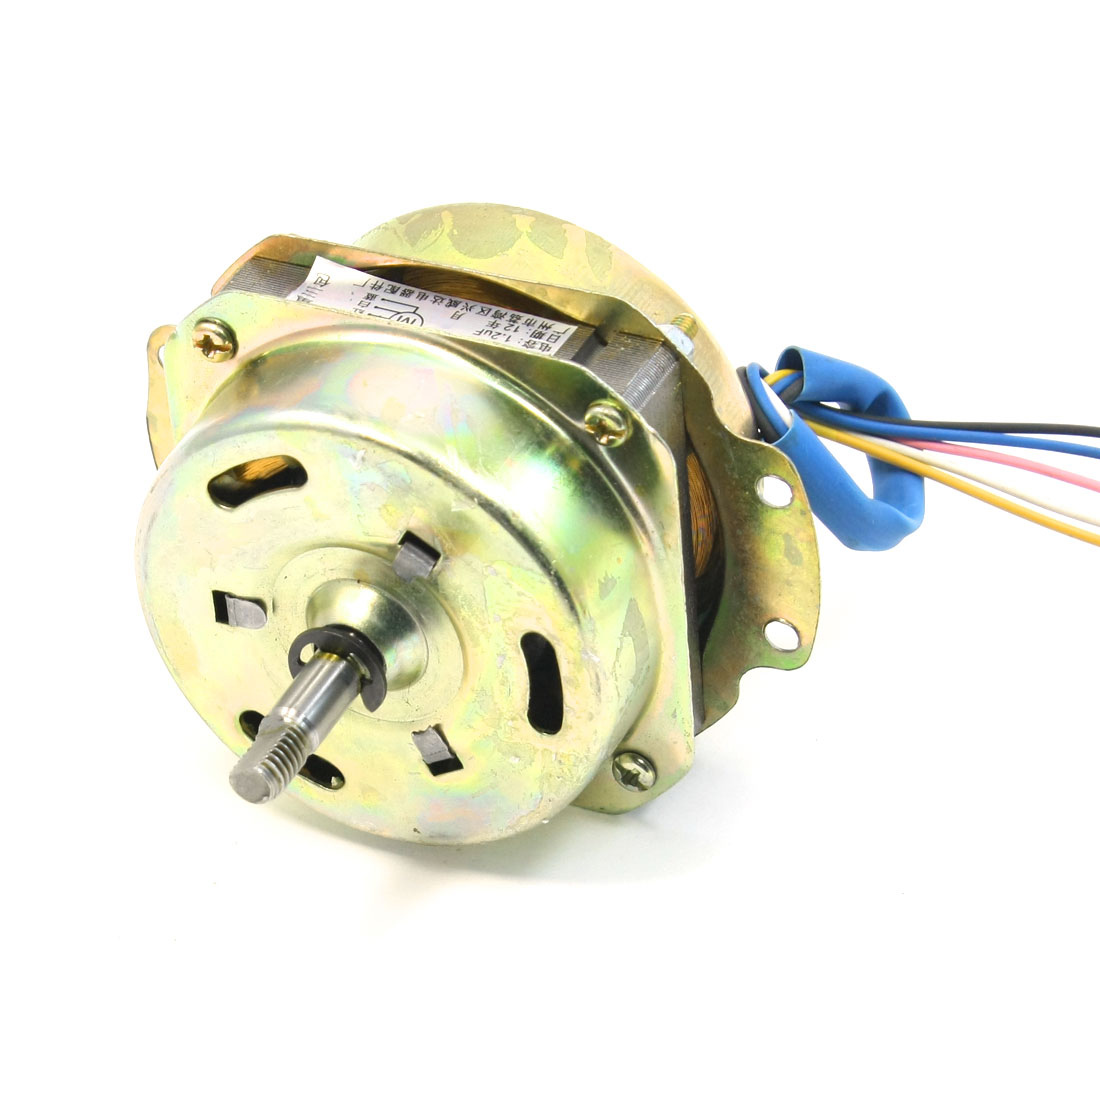 AC 220V 0.23A 60W Single Phase 3 Speed Electronic Ventilator Fan Motor